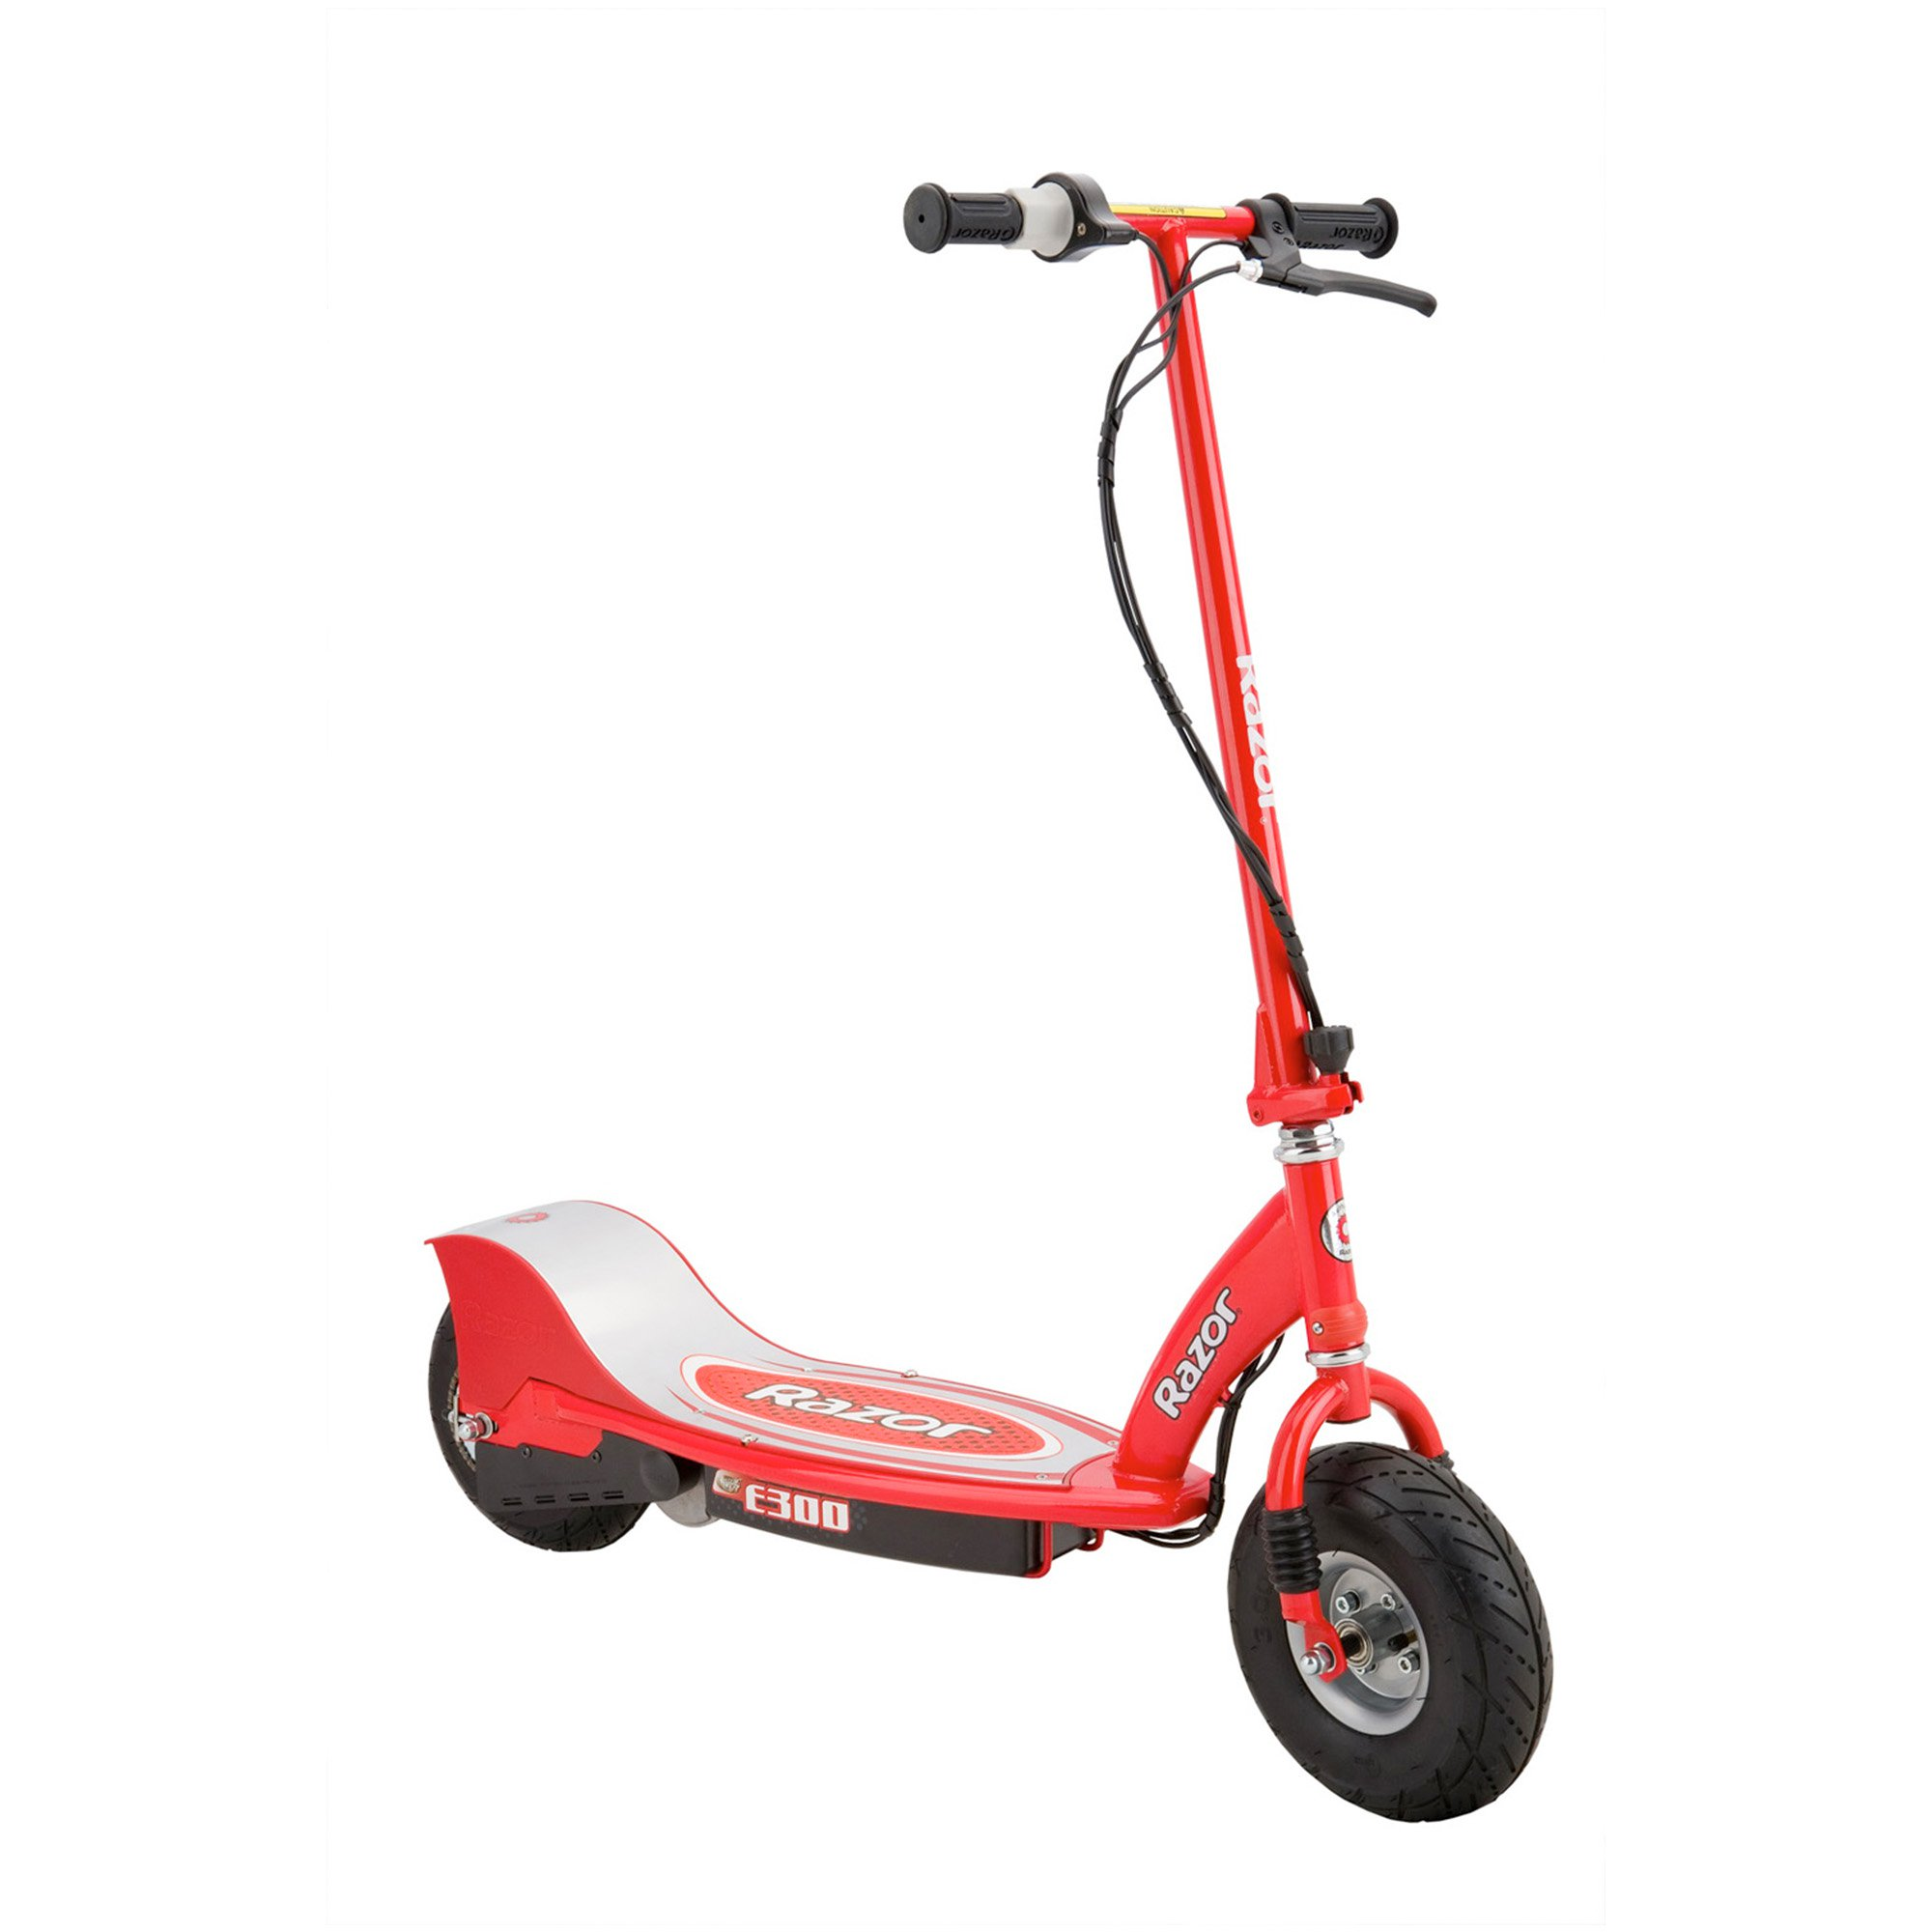 Razor E300 Rechargeable Electric 24 Volt Motorized Ride On Kids Scooter, Red by Razor